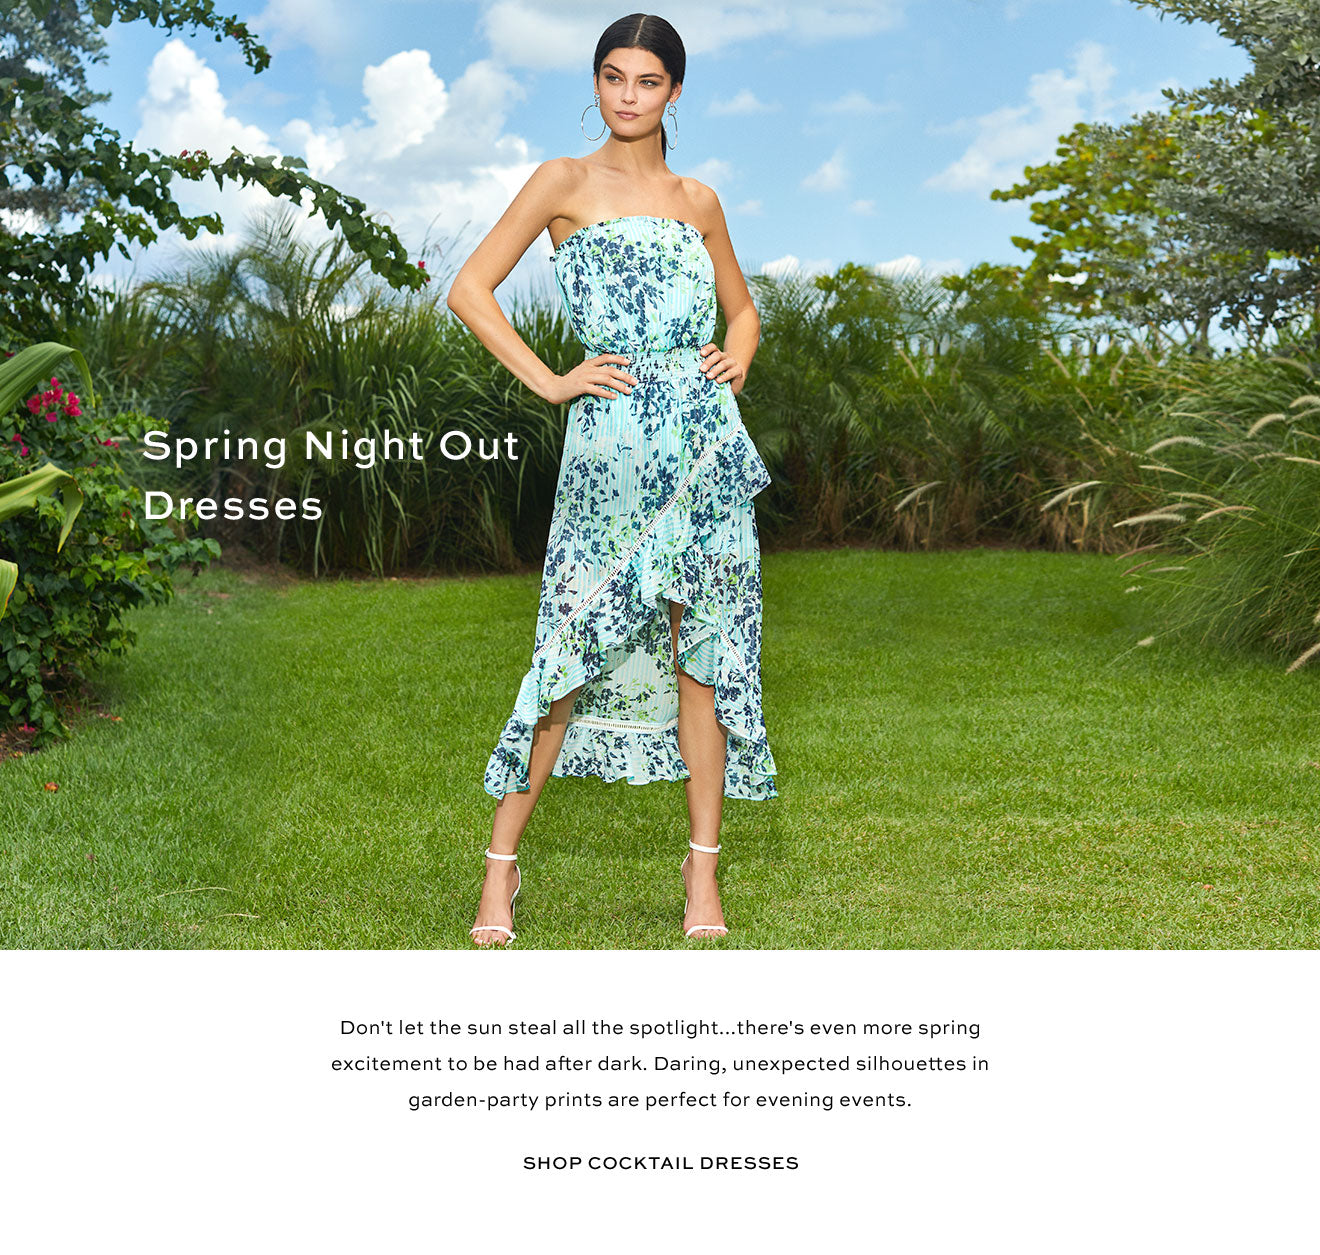 Shop Spring Night Out Dresses